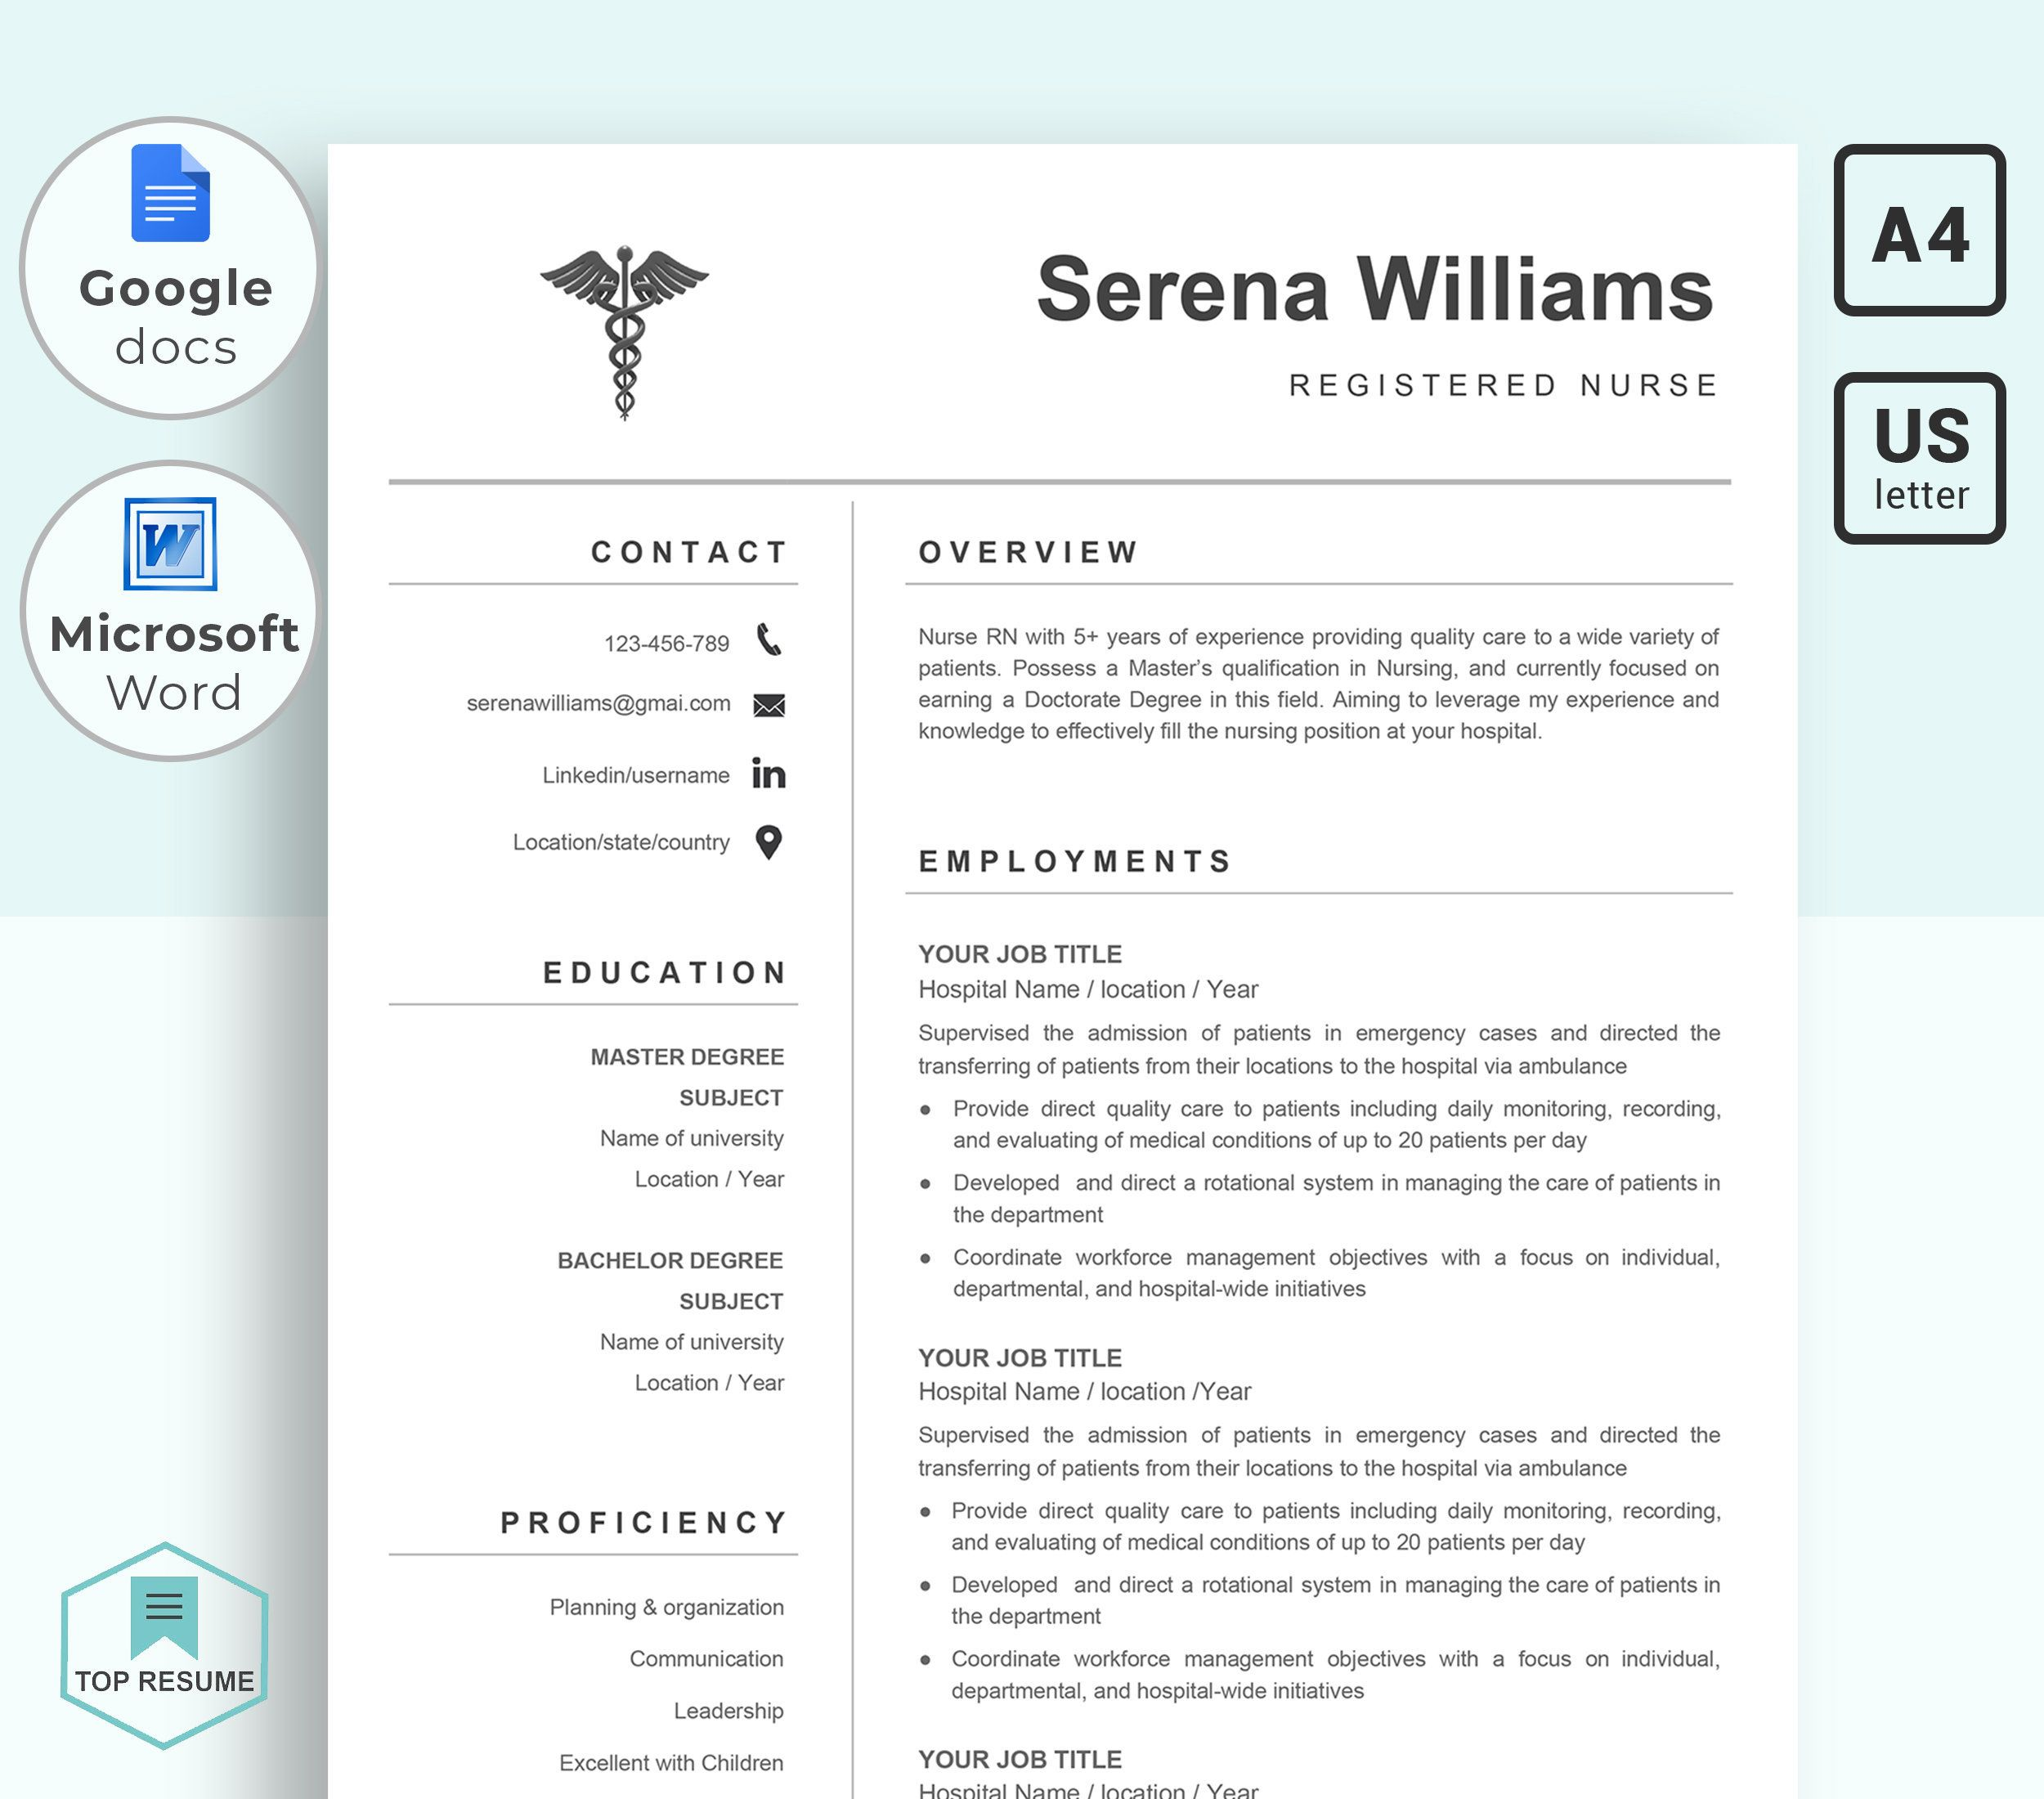 Ms Word And Google Docs Resume Template For Registered Nurse Medical And Pharmacy Cv Wi Nursing Resume Template Resume Template Microsoft Word Resume Template